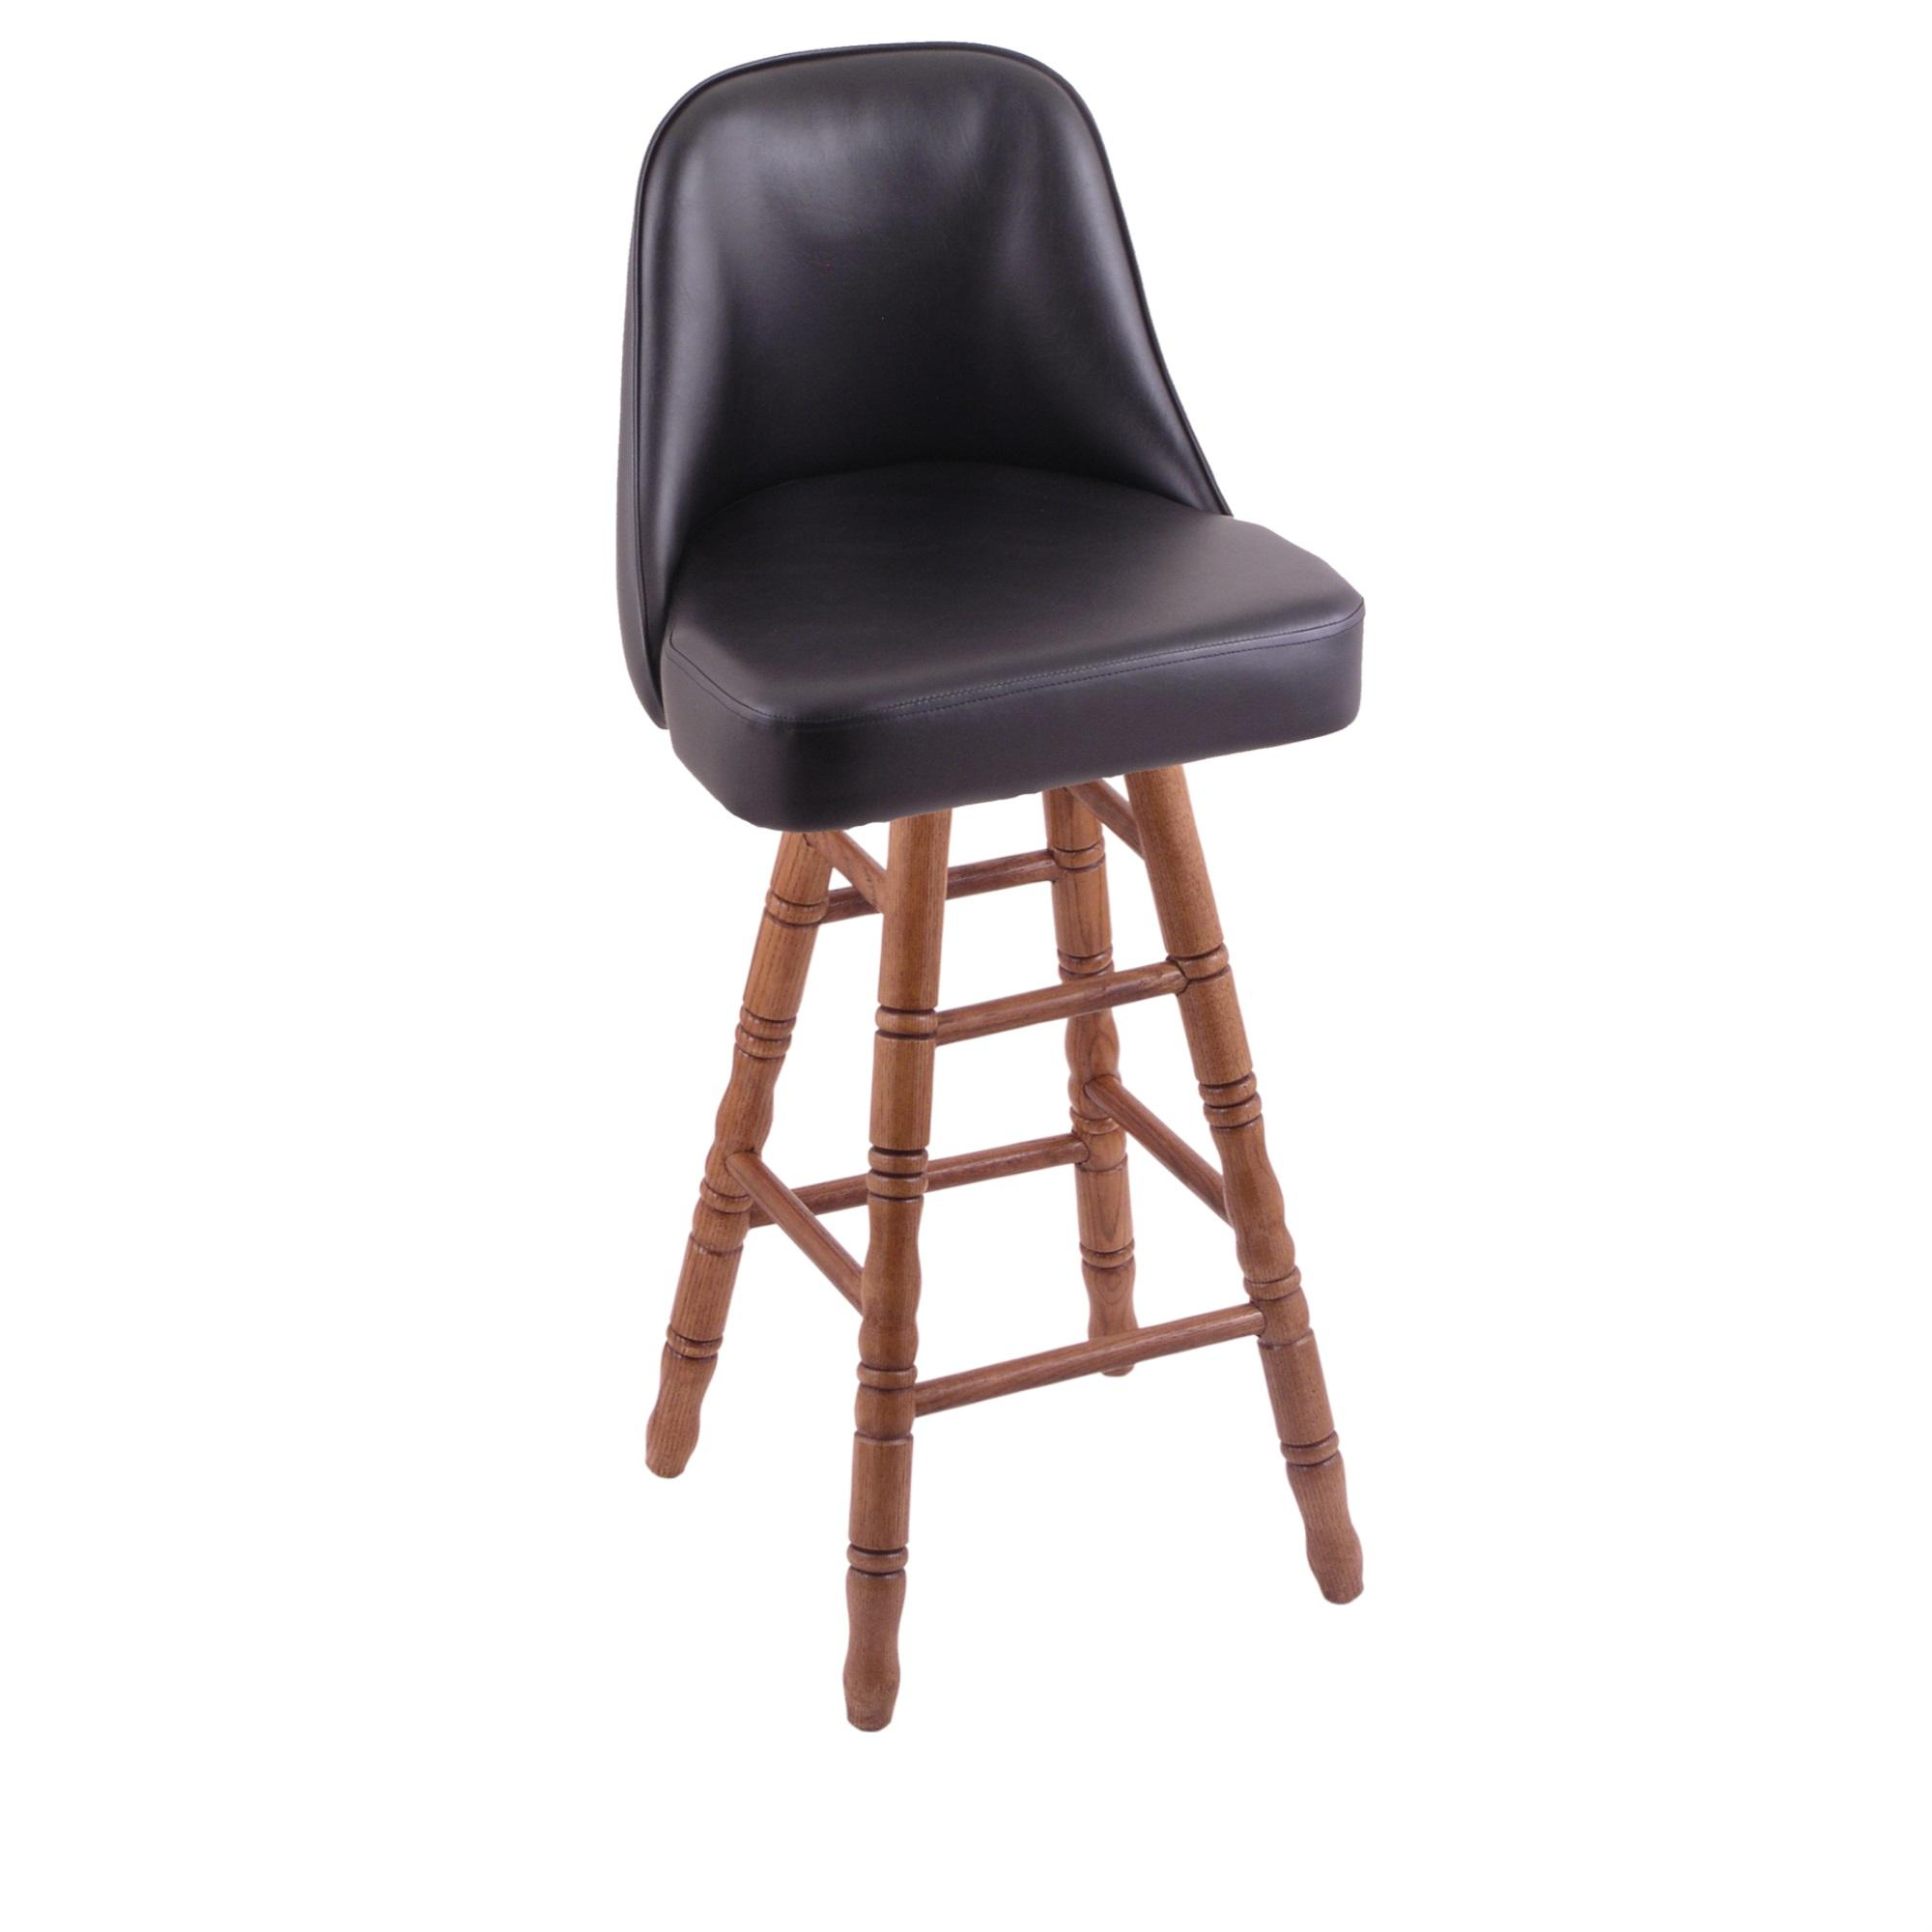 Grizzly Counter Stool with Turned Oak Legs, Medium Finish, and 360 Swivel